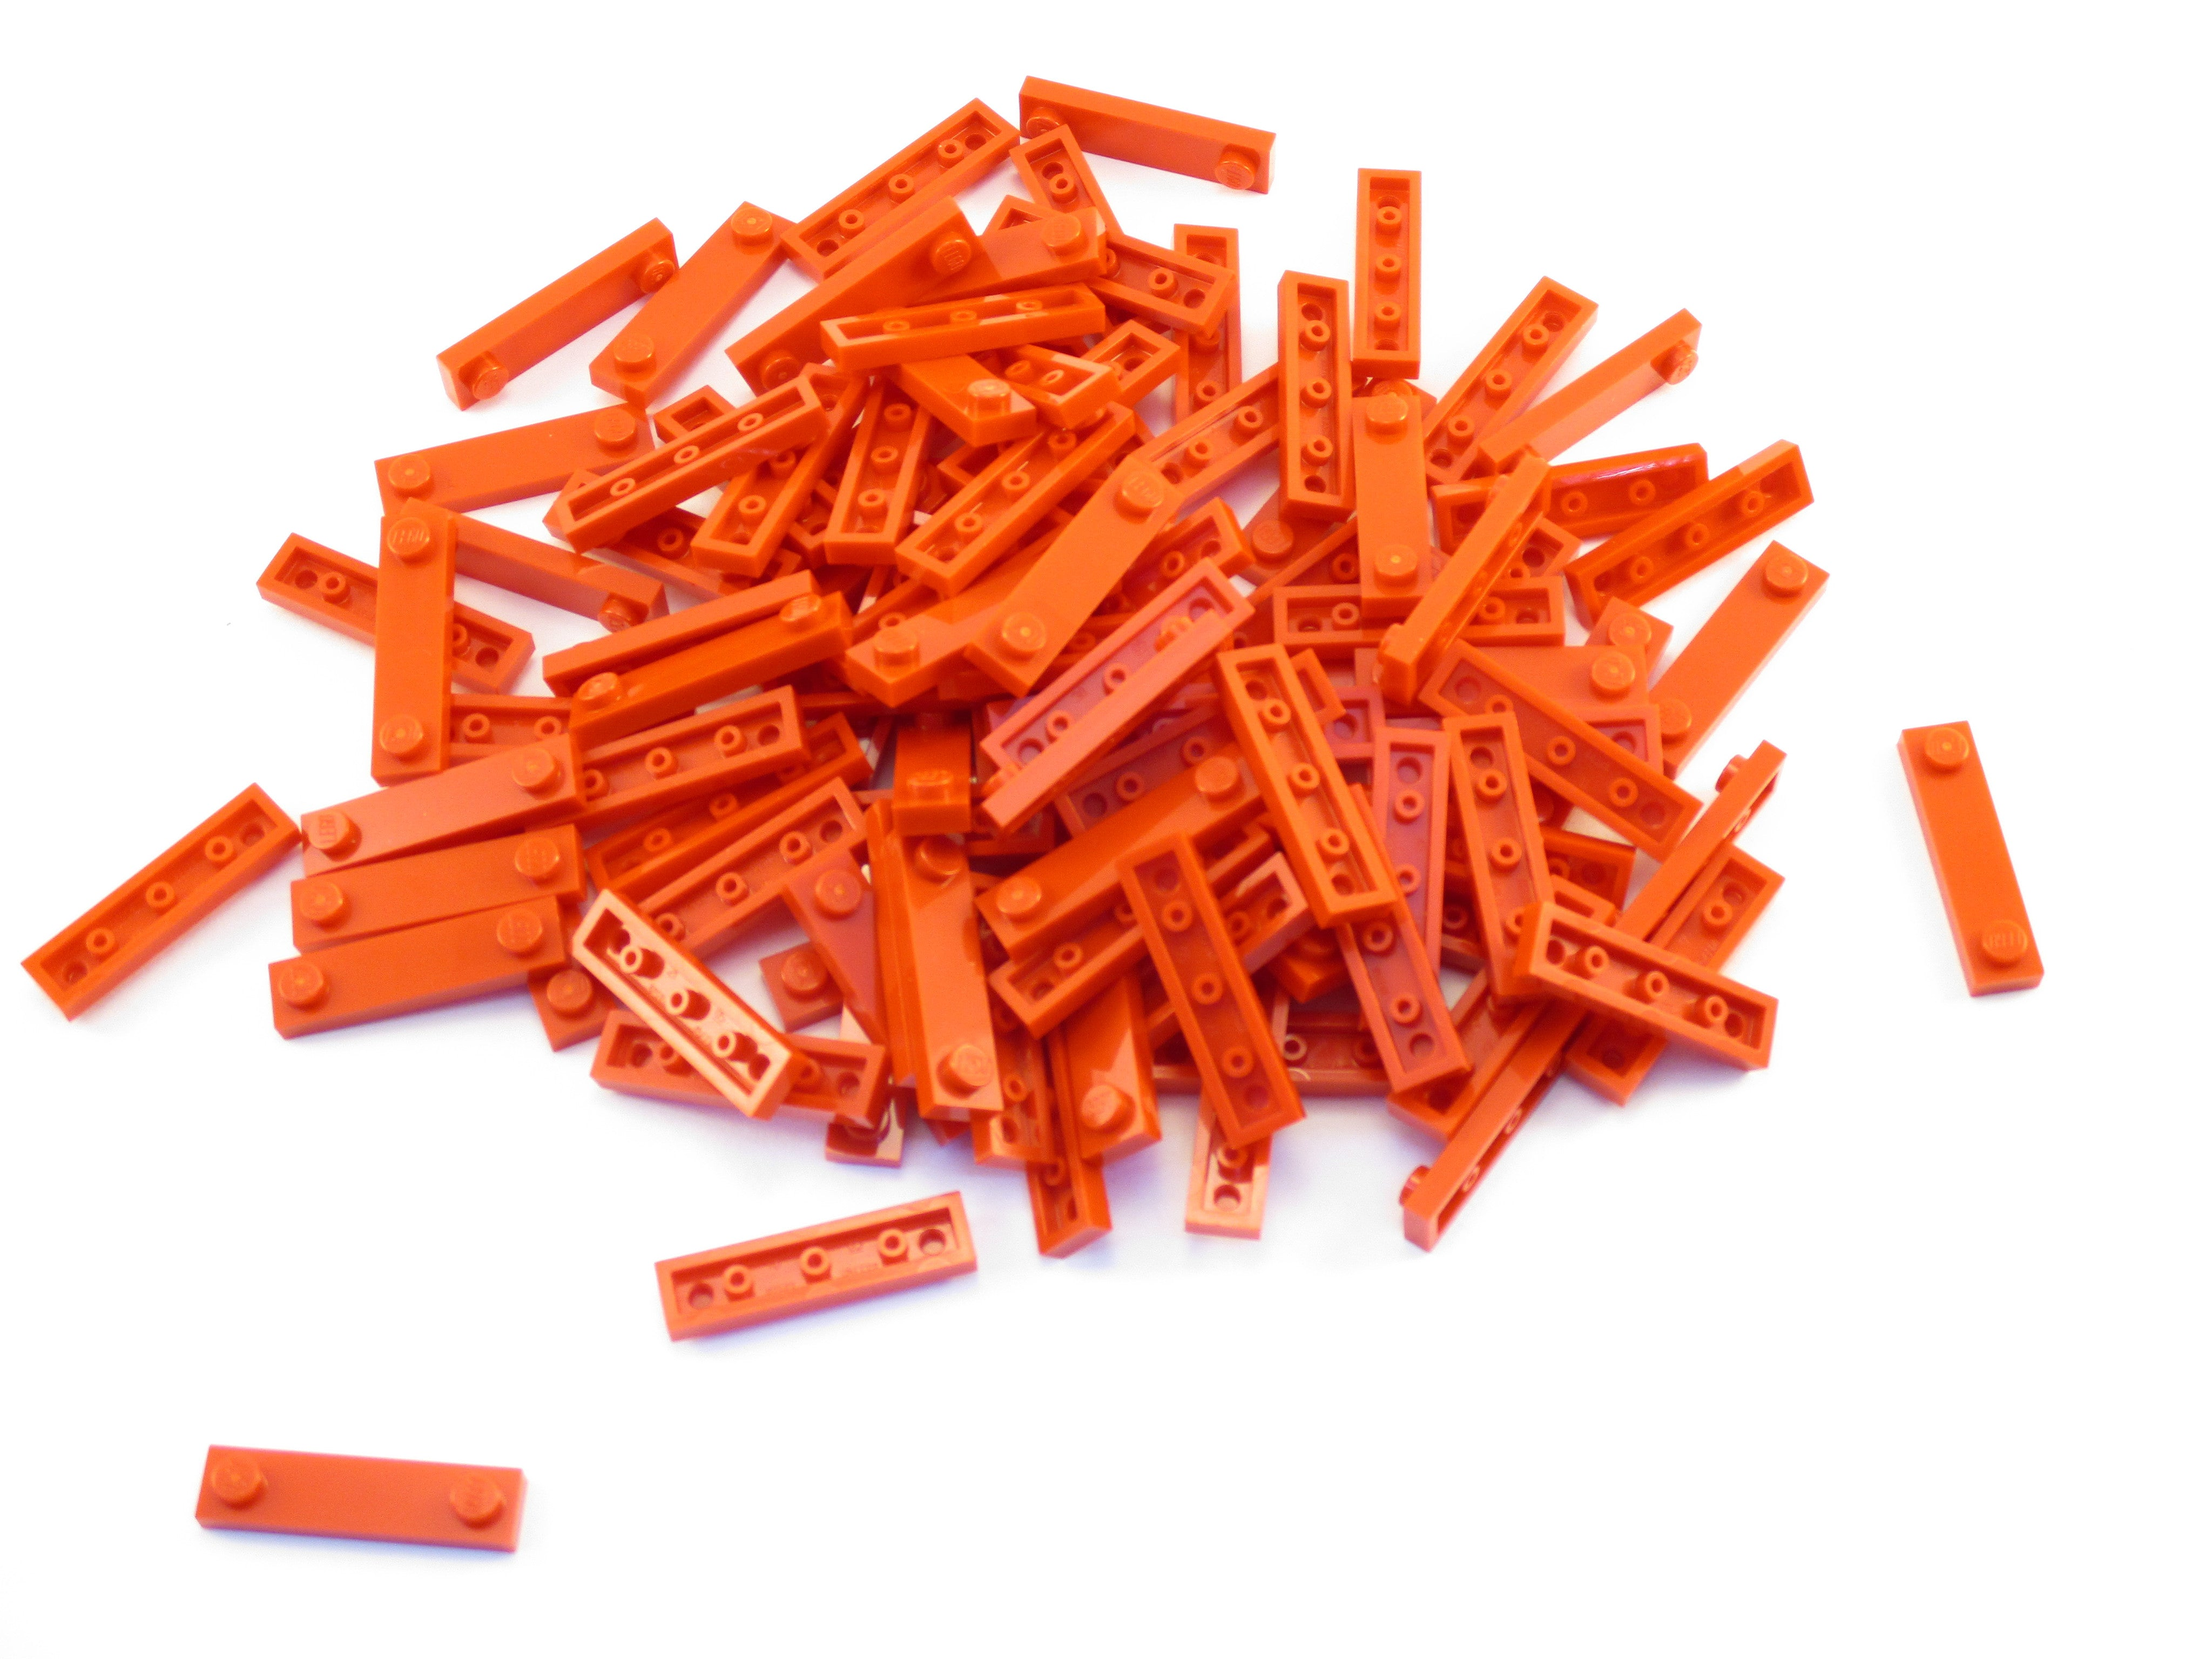 LEGO Magenta Plate Modified 1x4 2 Studs Lot of 100 Parts Pieces 92593